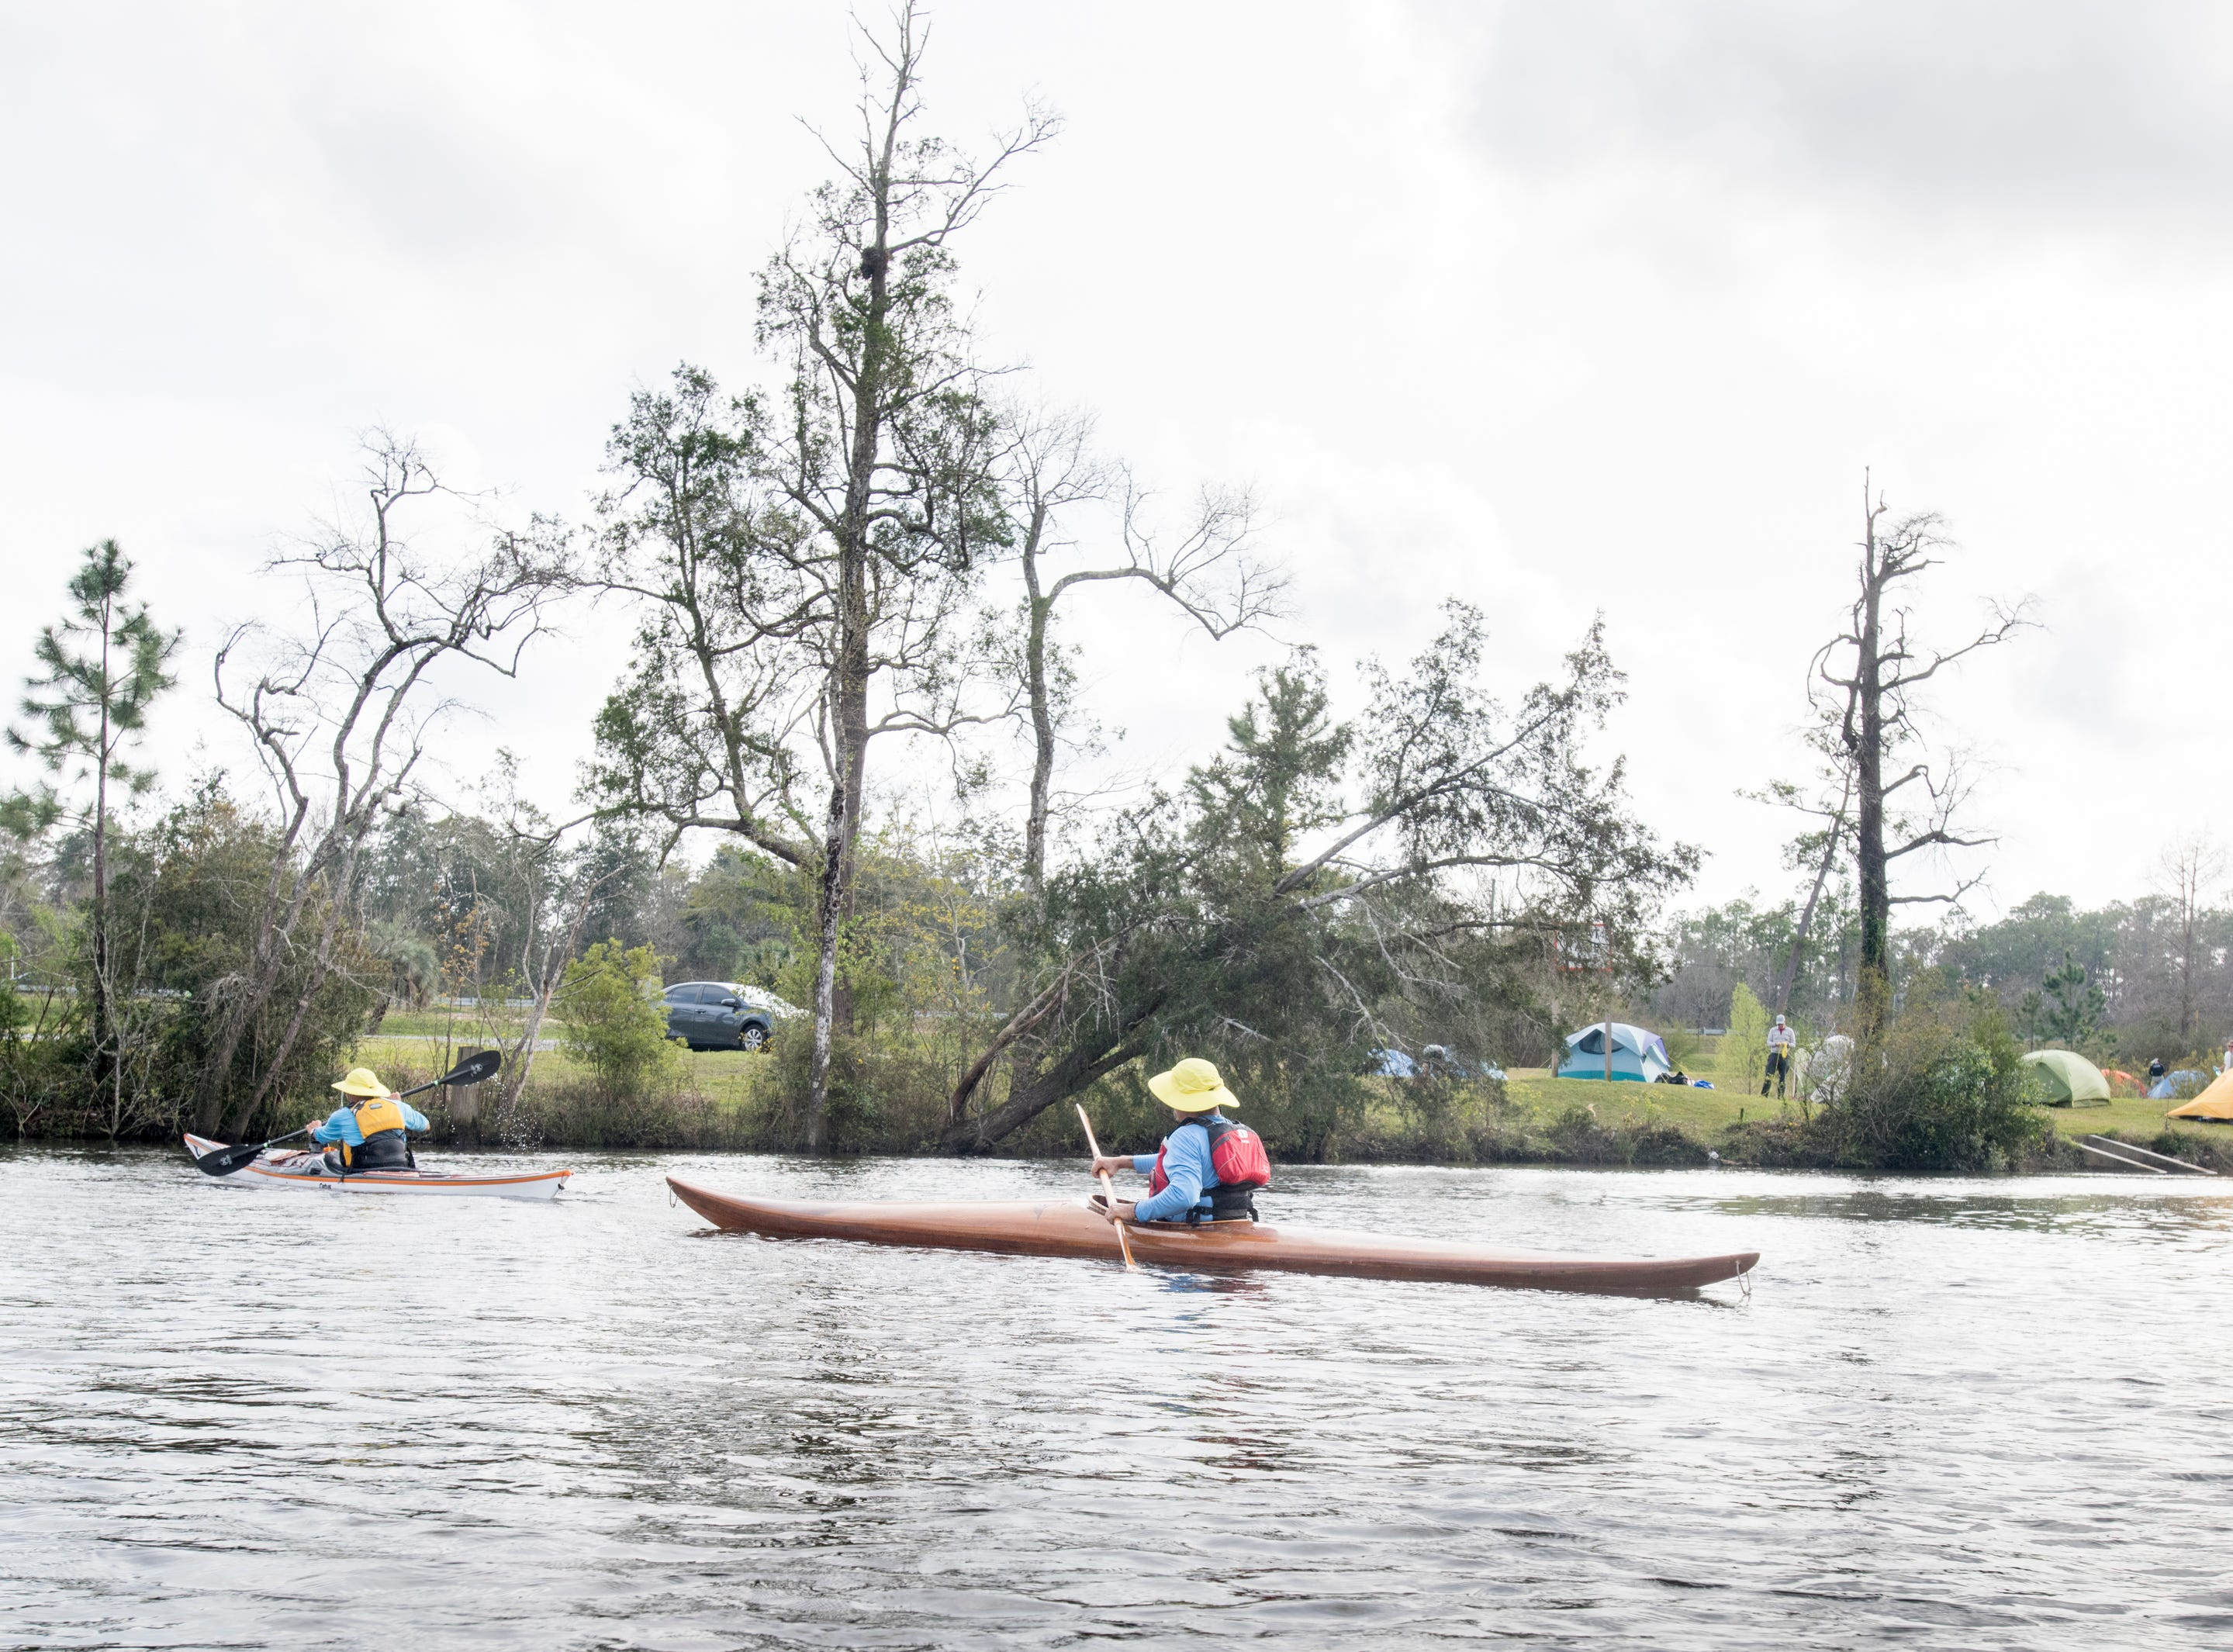 Paul Gelderblom, of Charlevoix, Michigan, left, and Guerry Bradley, of St. Augustine, make their way to shore at the Wilson Robertson Boat Ramp on the Perdido River in Pensacola on Monday, March 11, 2019.  Paddle Florida is hosting 60 paddlers on a 5-day, 60-mile journey from Otto Hill to Perdido Pass.  Florida is currently working with Alabama to establish a paddling trail on the Perdido River.